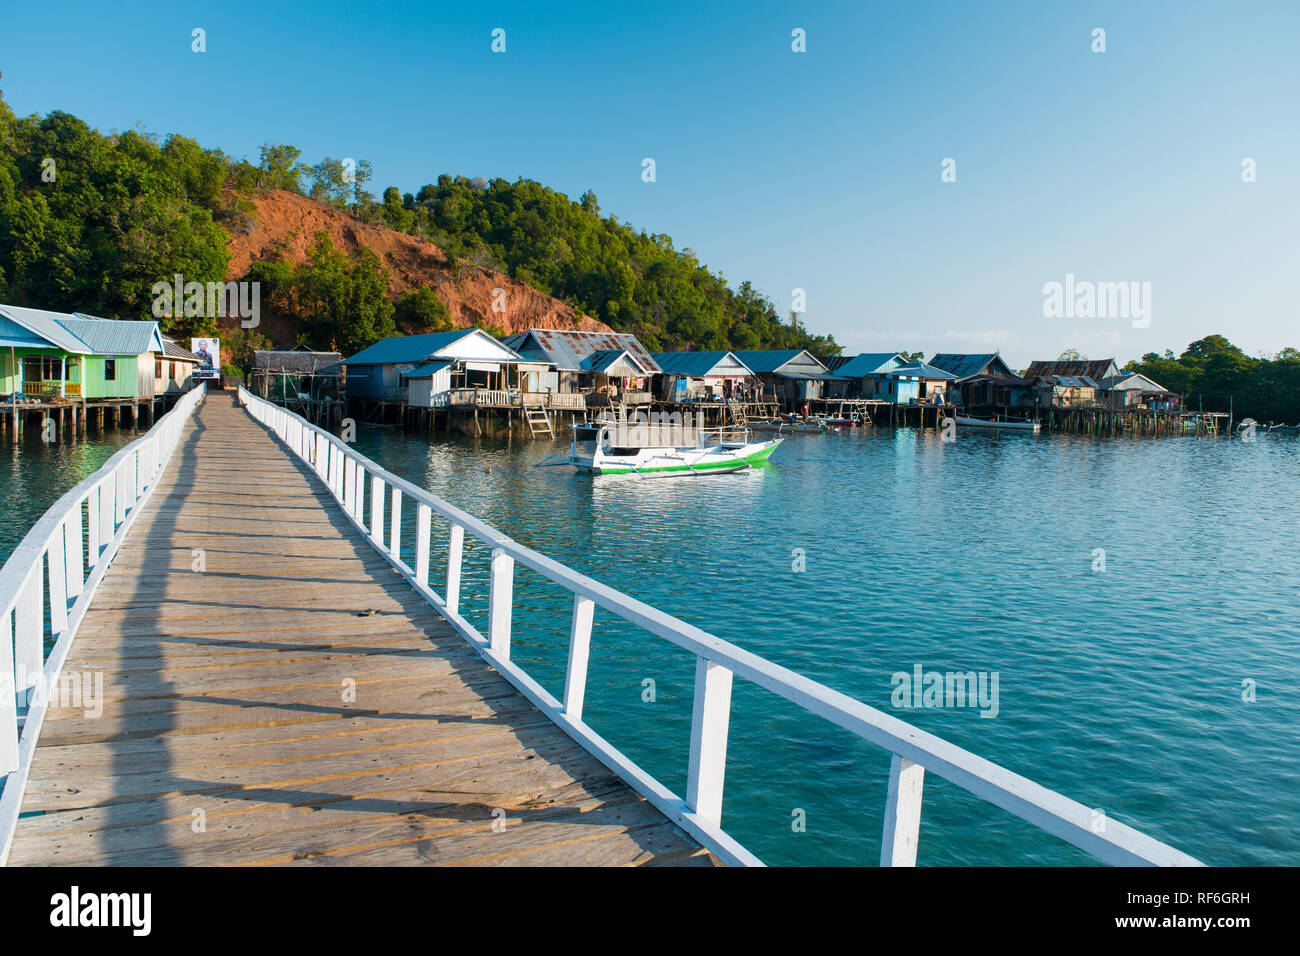 Morning View Of Pandan Island In Sambujan, Tolitoli, Central Sulawesi, Indonesia - Stock Image